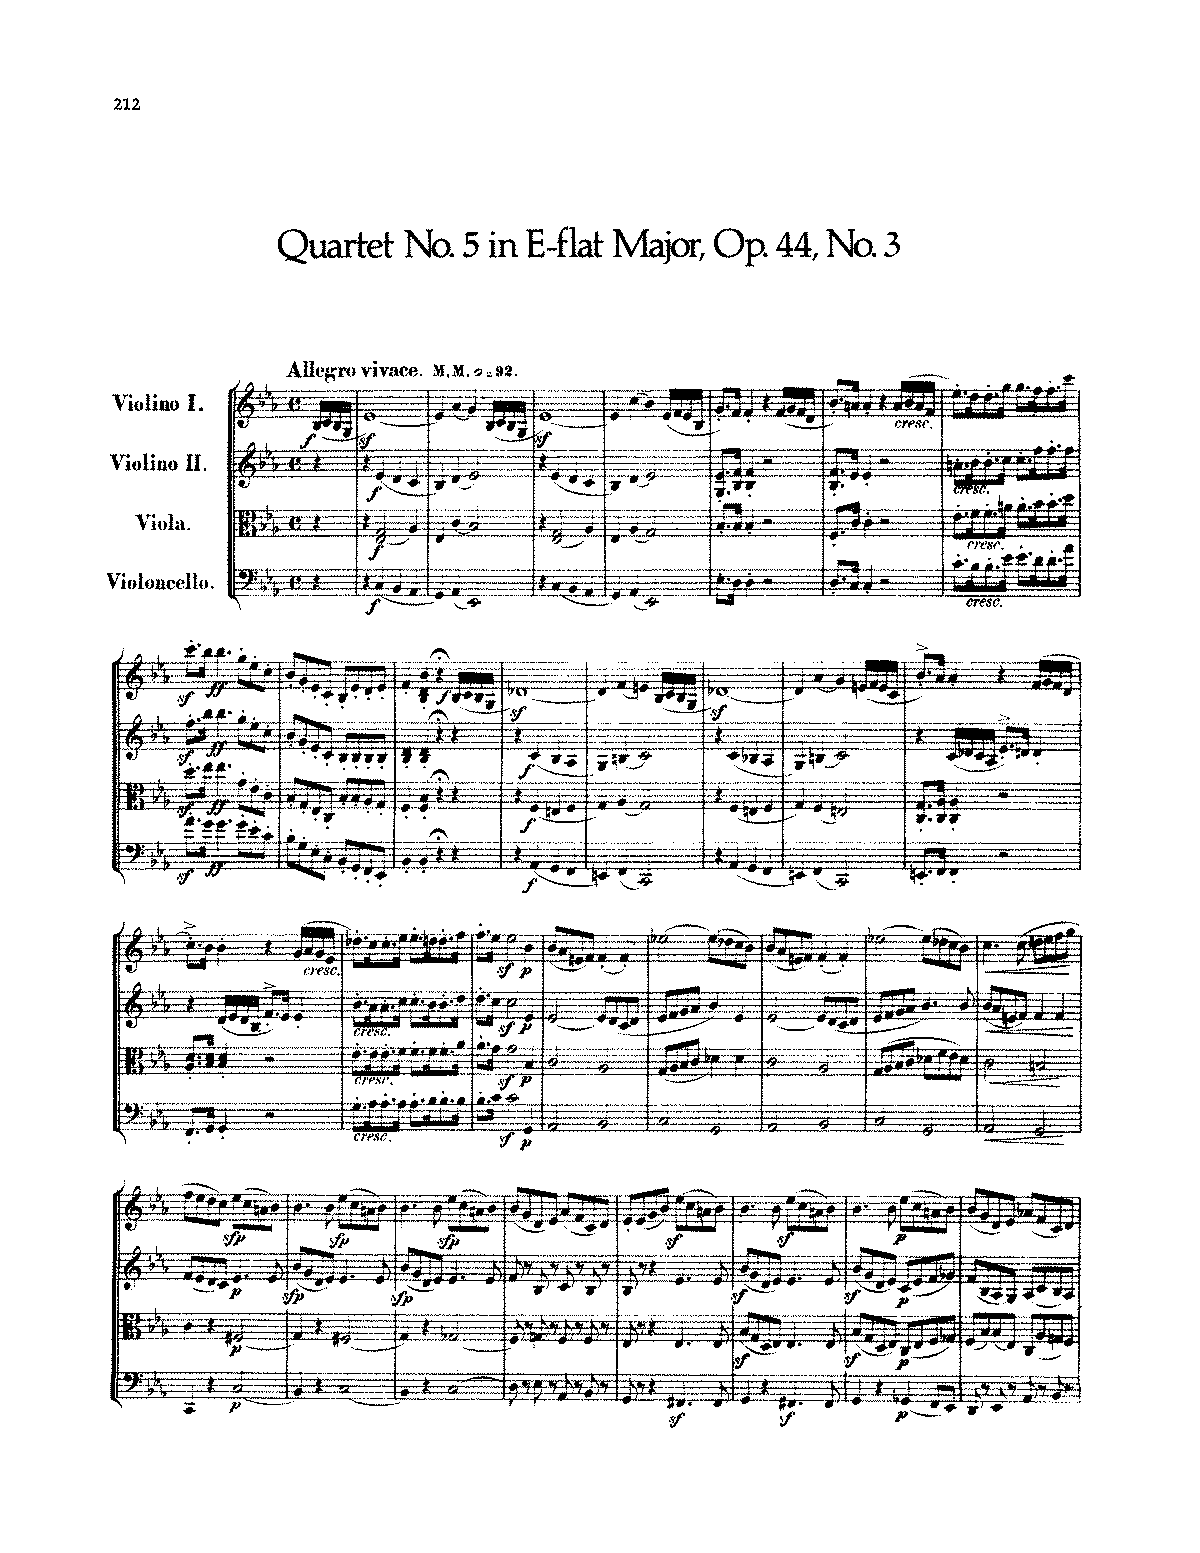 Mendelssohn - String Quartet No. 5.pdf